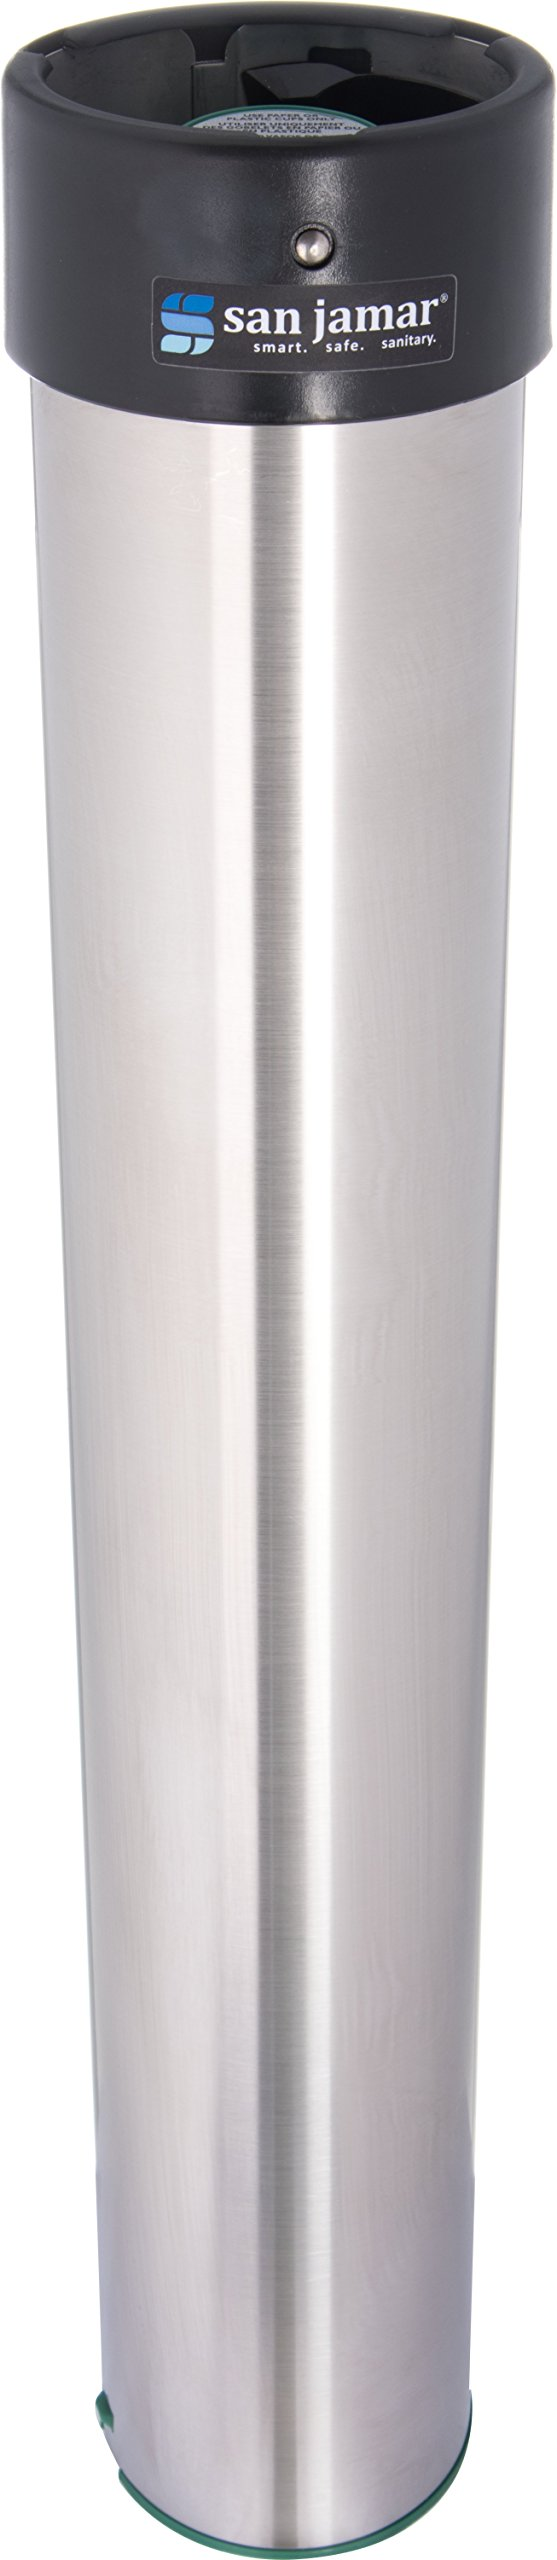 San Jamar C3200E Stainless Steel Vertical Surface Mount Beverage Cup Dispenser, Fits 6oz to 10oz Cup Size, 2-7/32'' to 3-3/16'' Rim, 23-1/2'' Tube Length